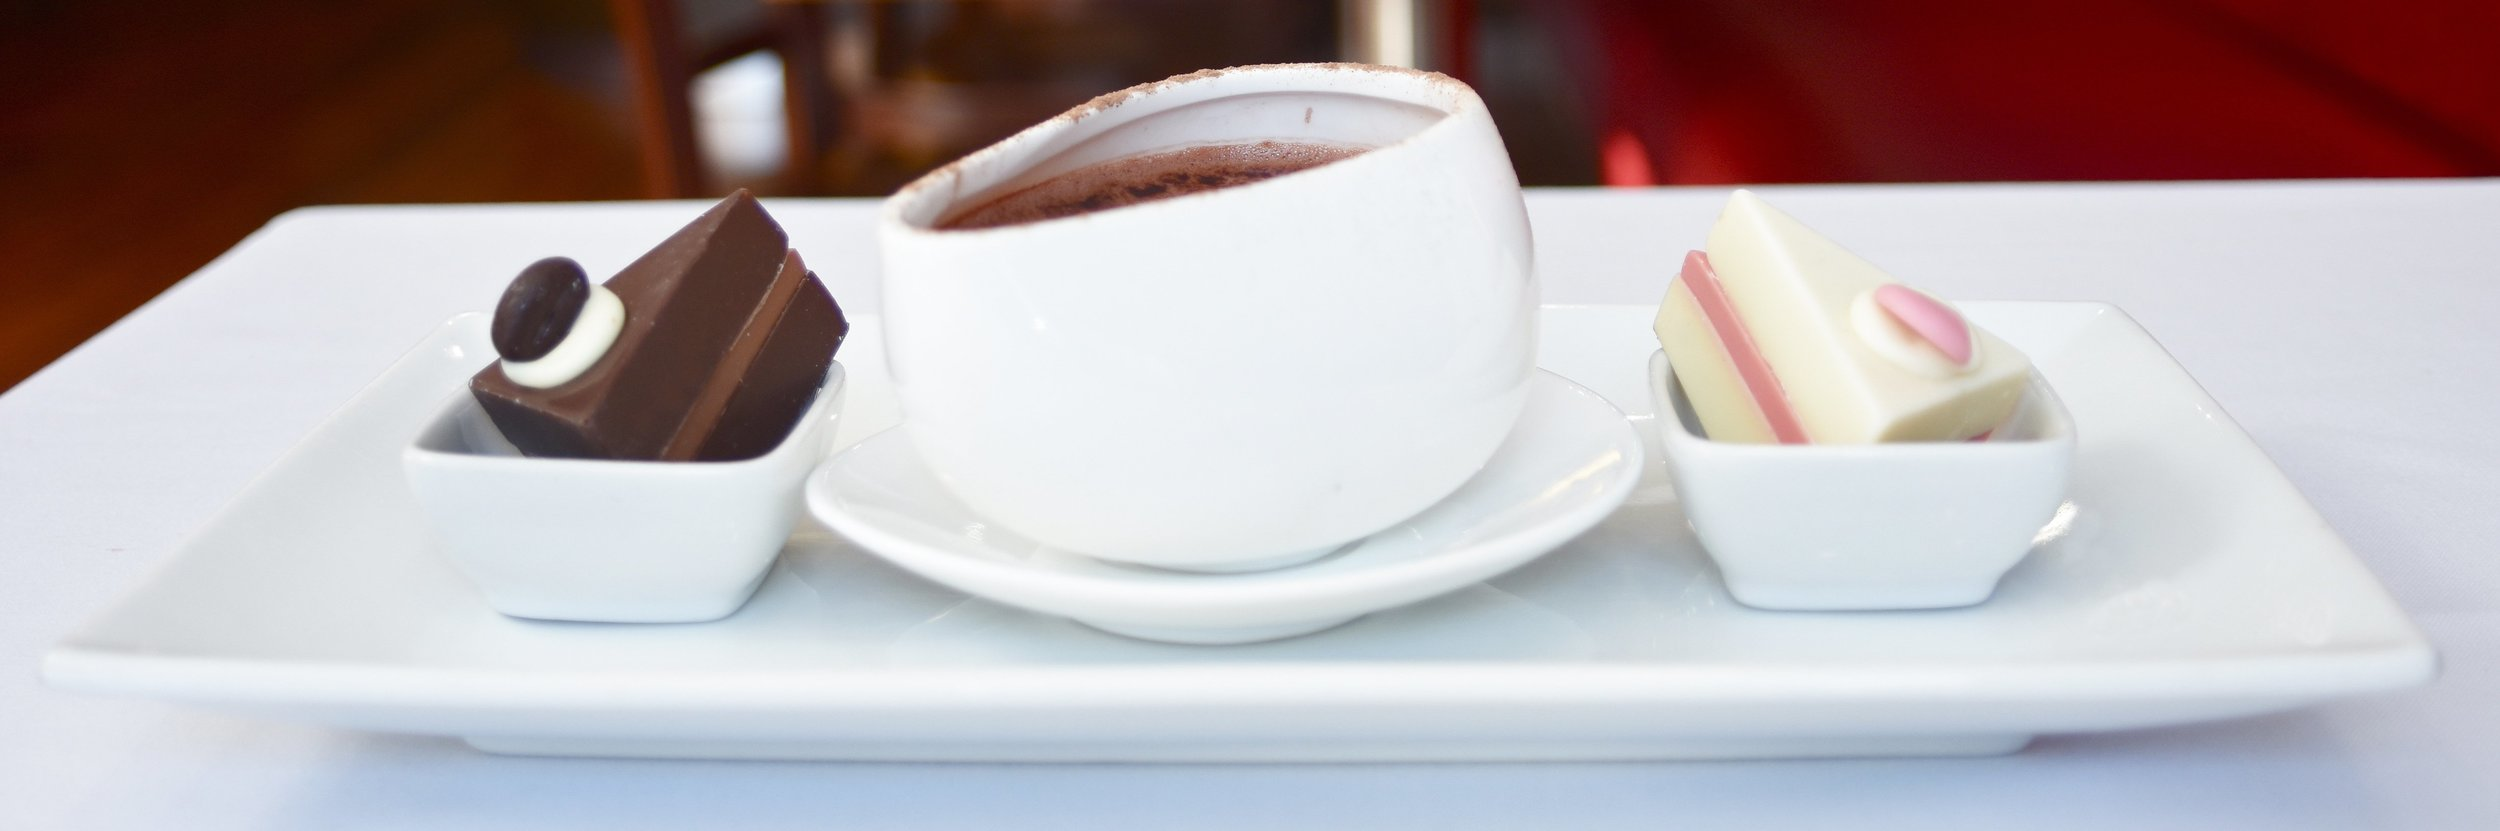 hot-chocolate-drinks-and-cake-the-chocolate-rooms-uk.jpg